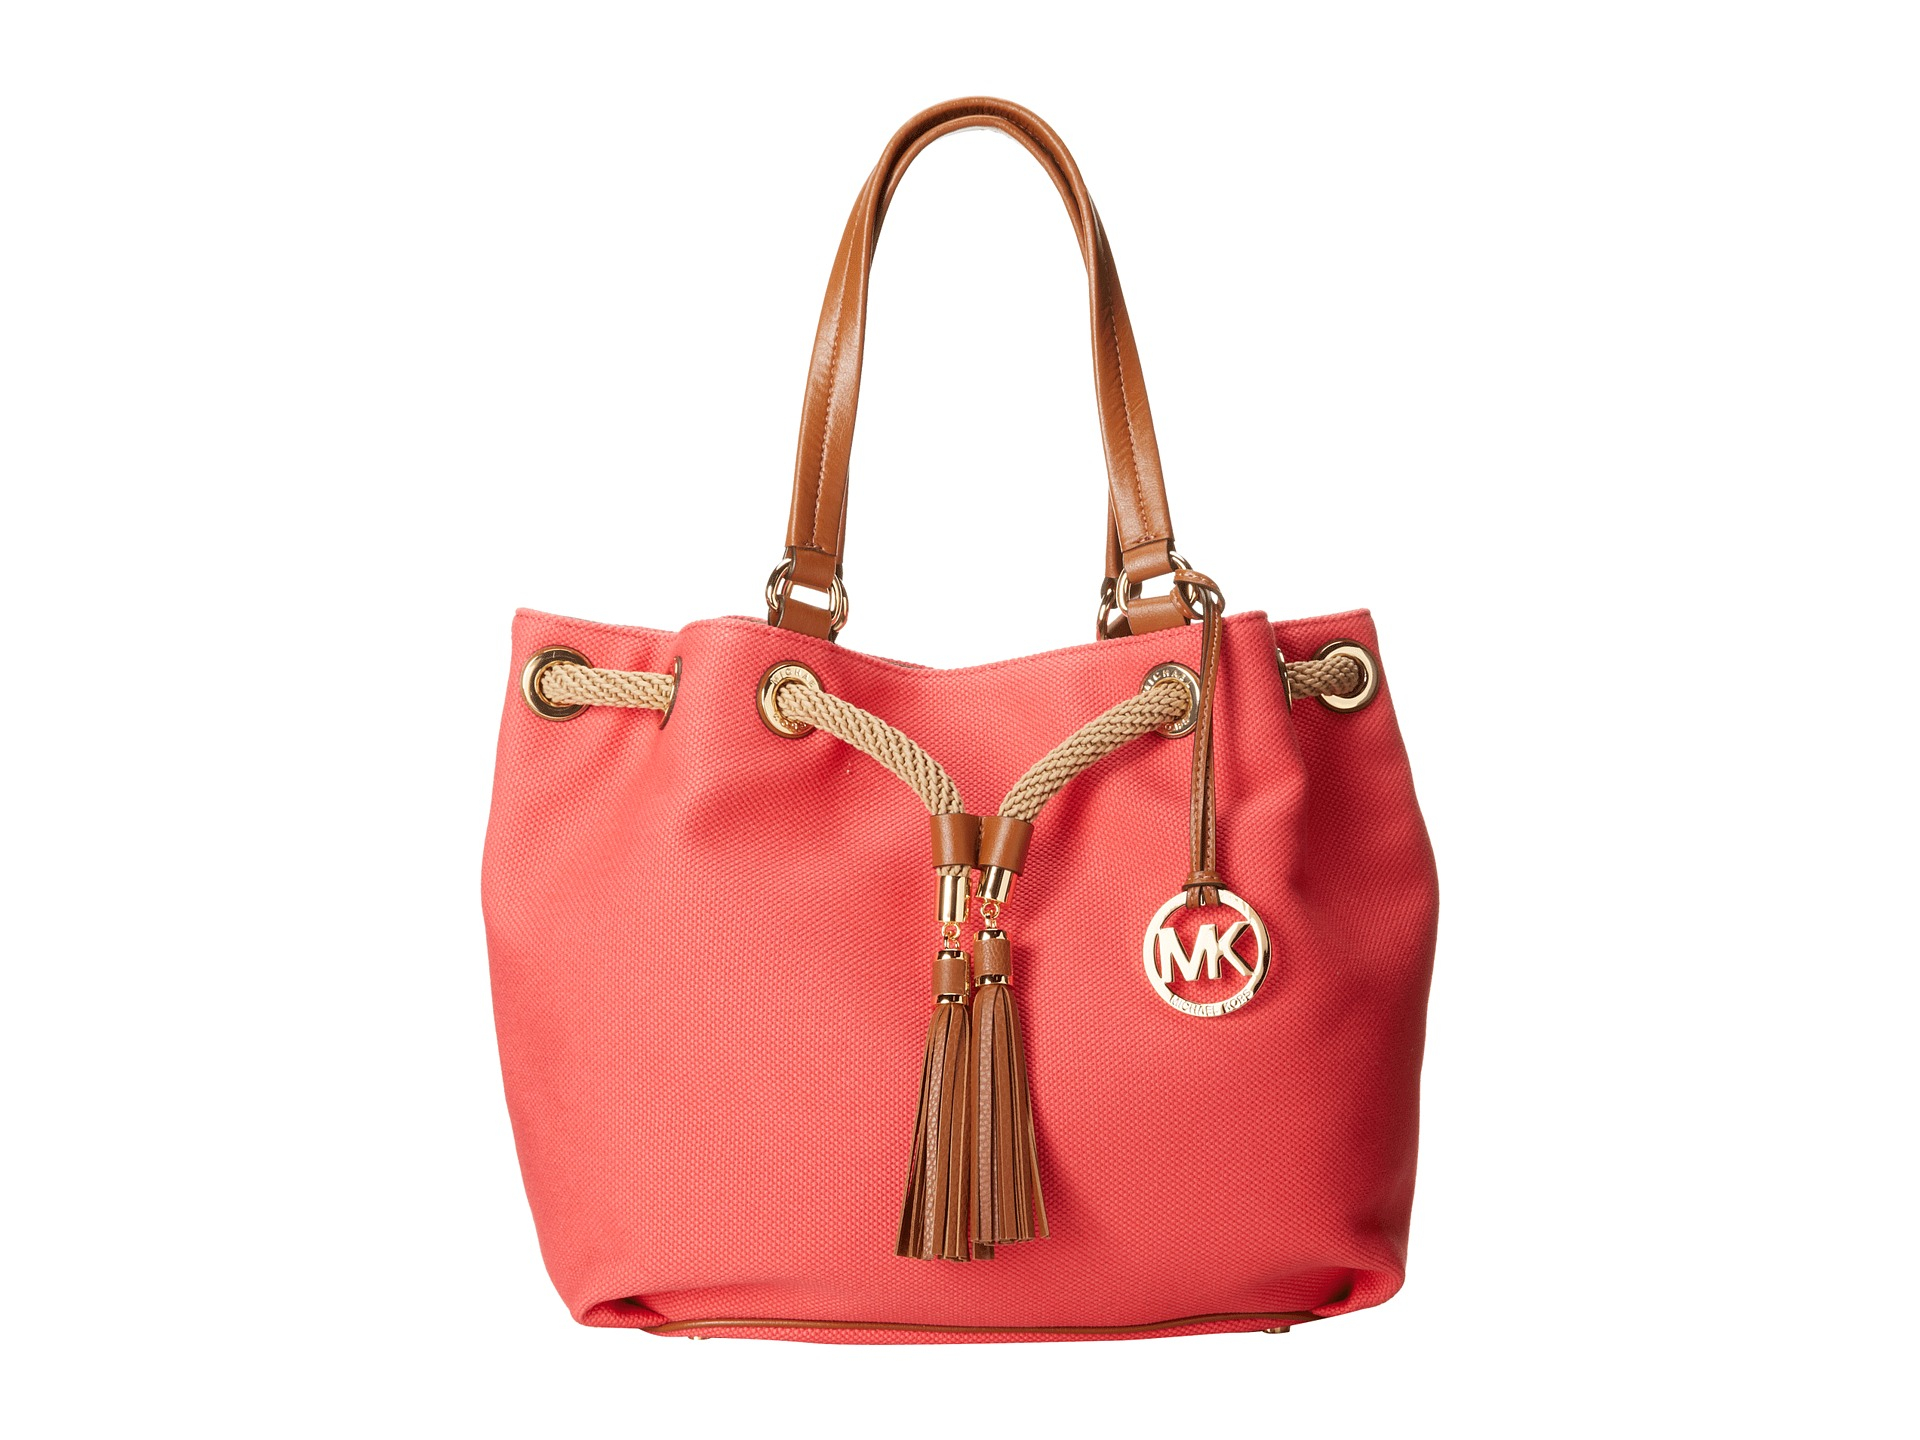 15e215c1722106 Gallery. Previously sold at: Zappos · Women's Michael Kors Marina